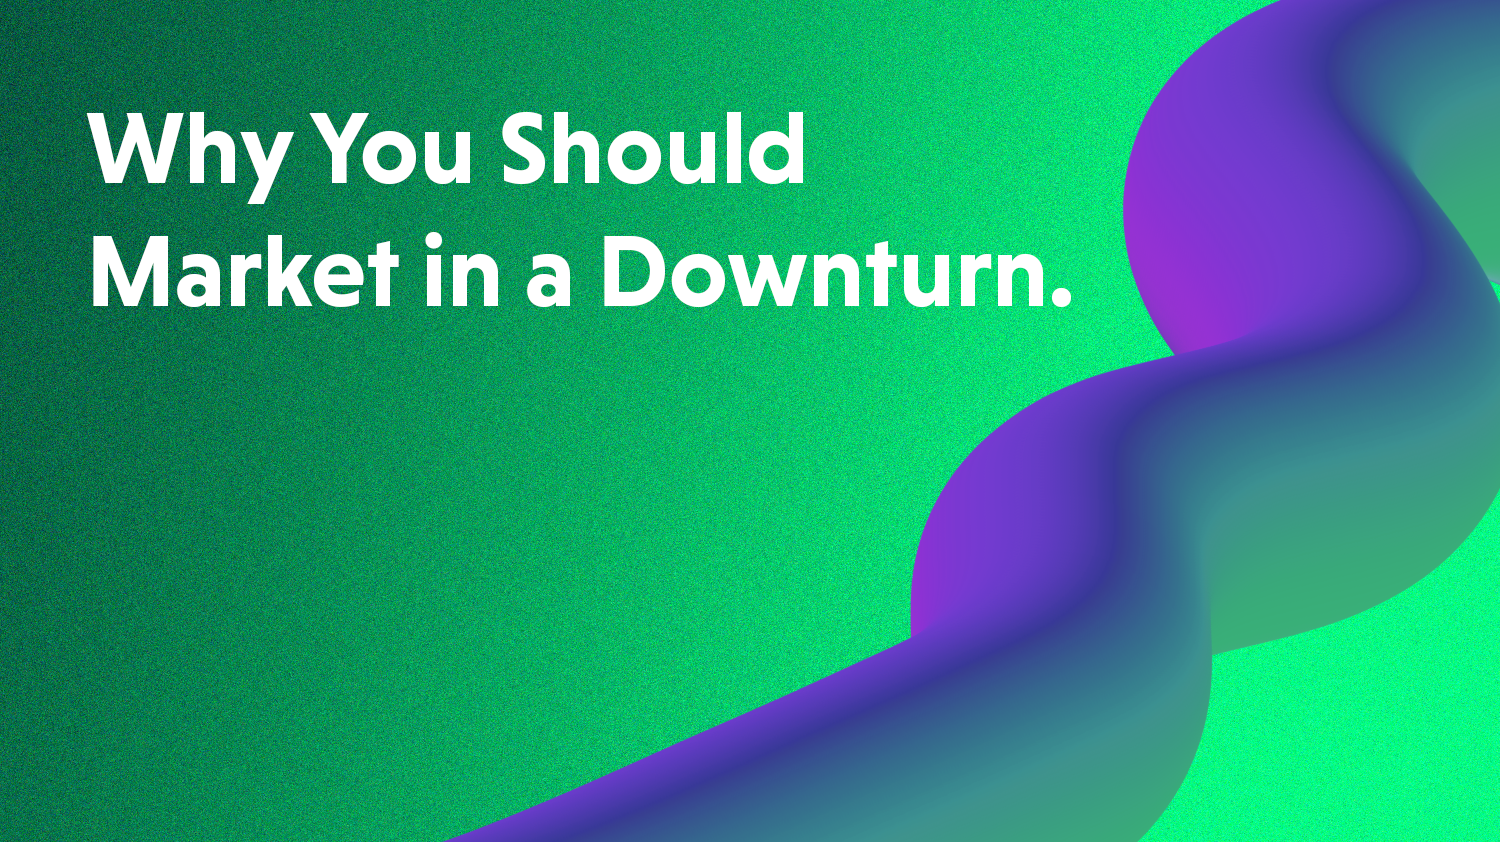 Why You Should Market During a Downturn